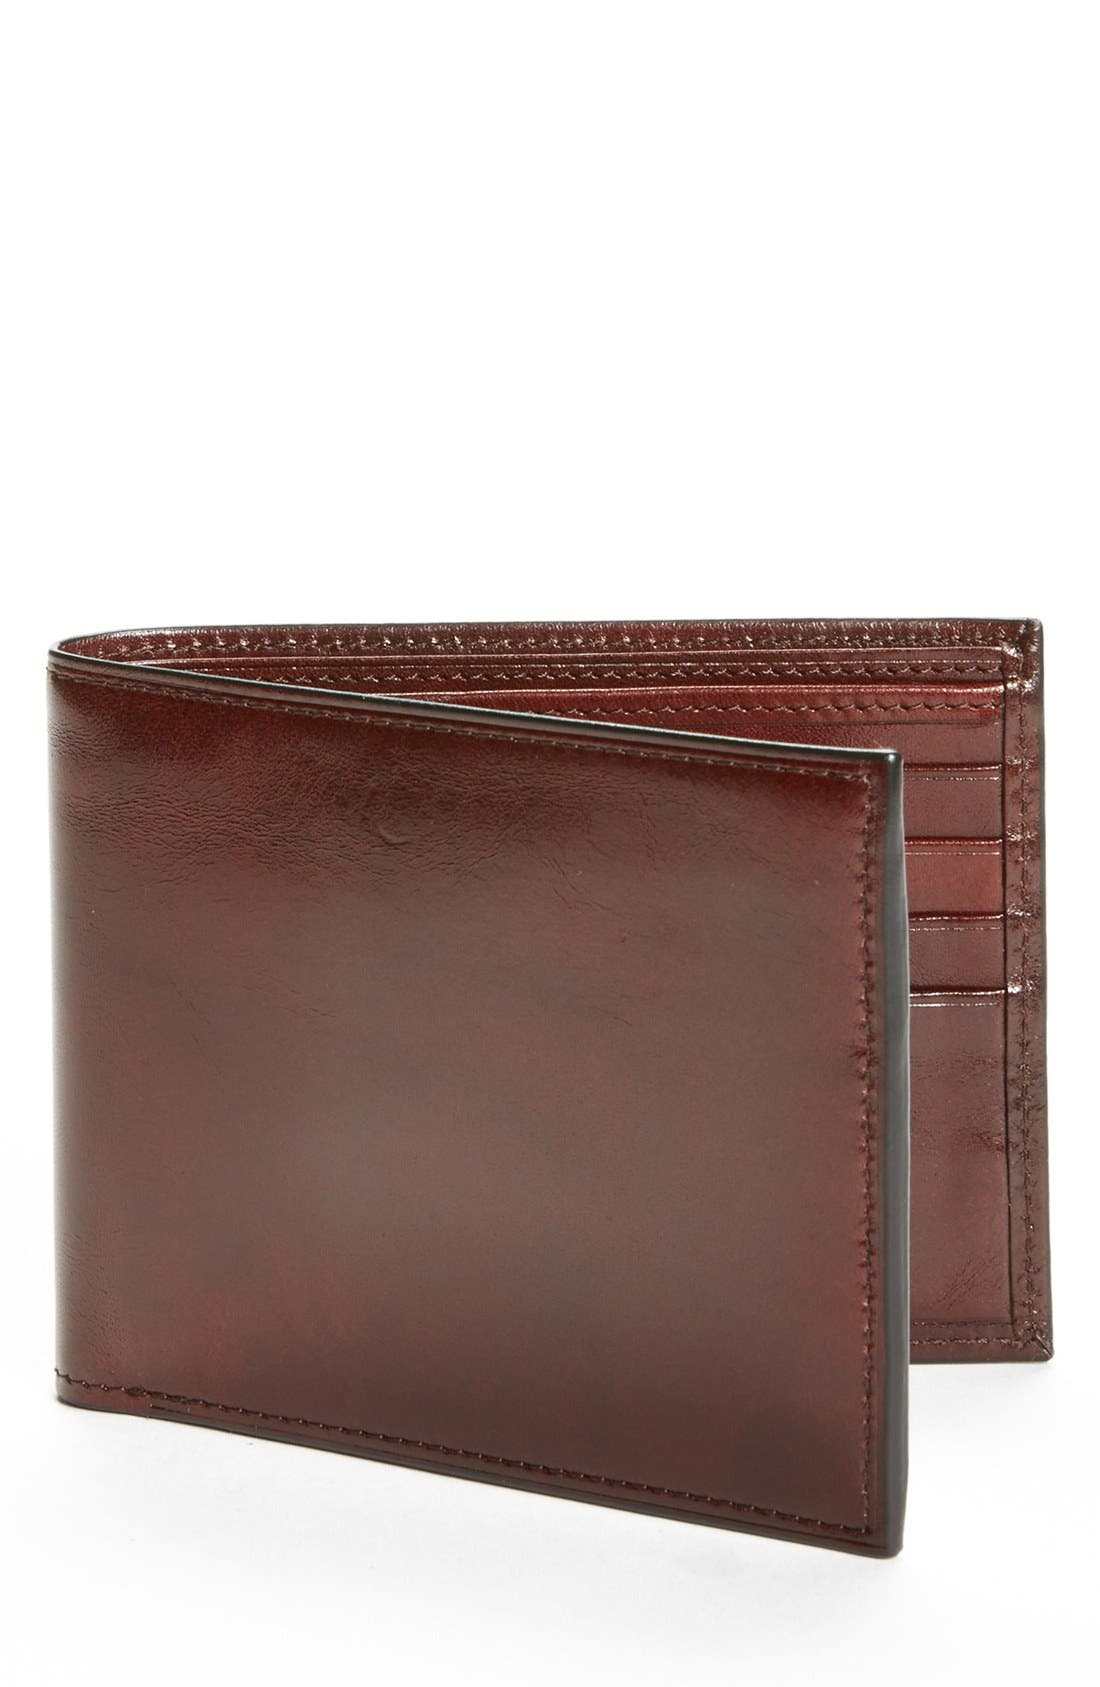 Main Image - Bosca ID Flap Leather Wallet